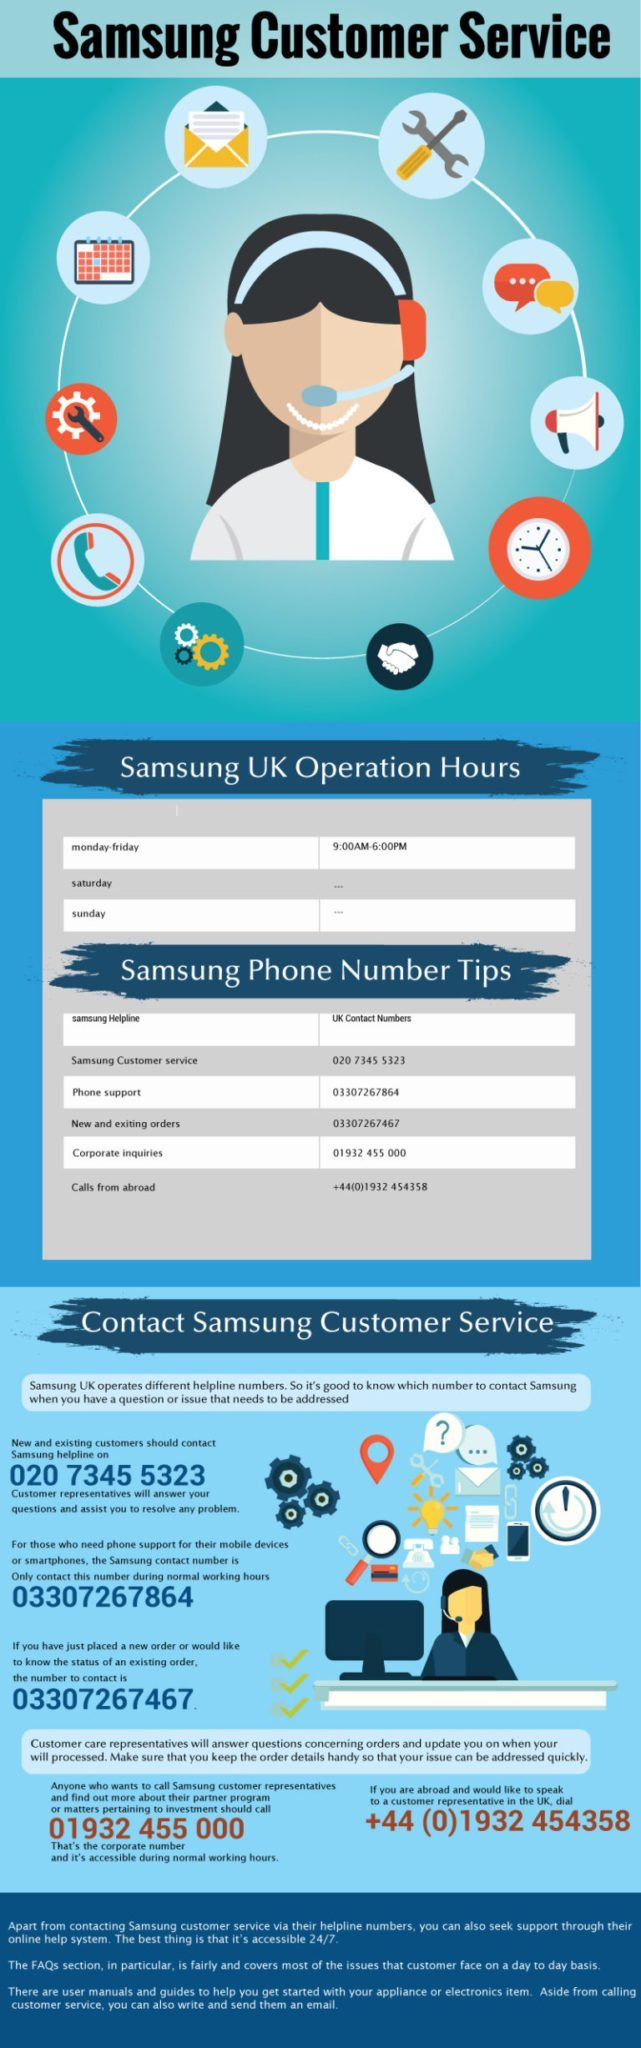 Samsung Helpline Phone Number 0025299011075 | 24/7 Helpline